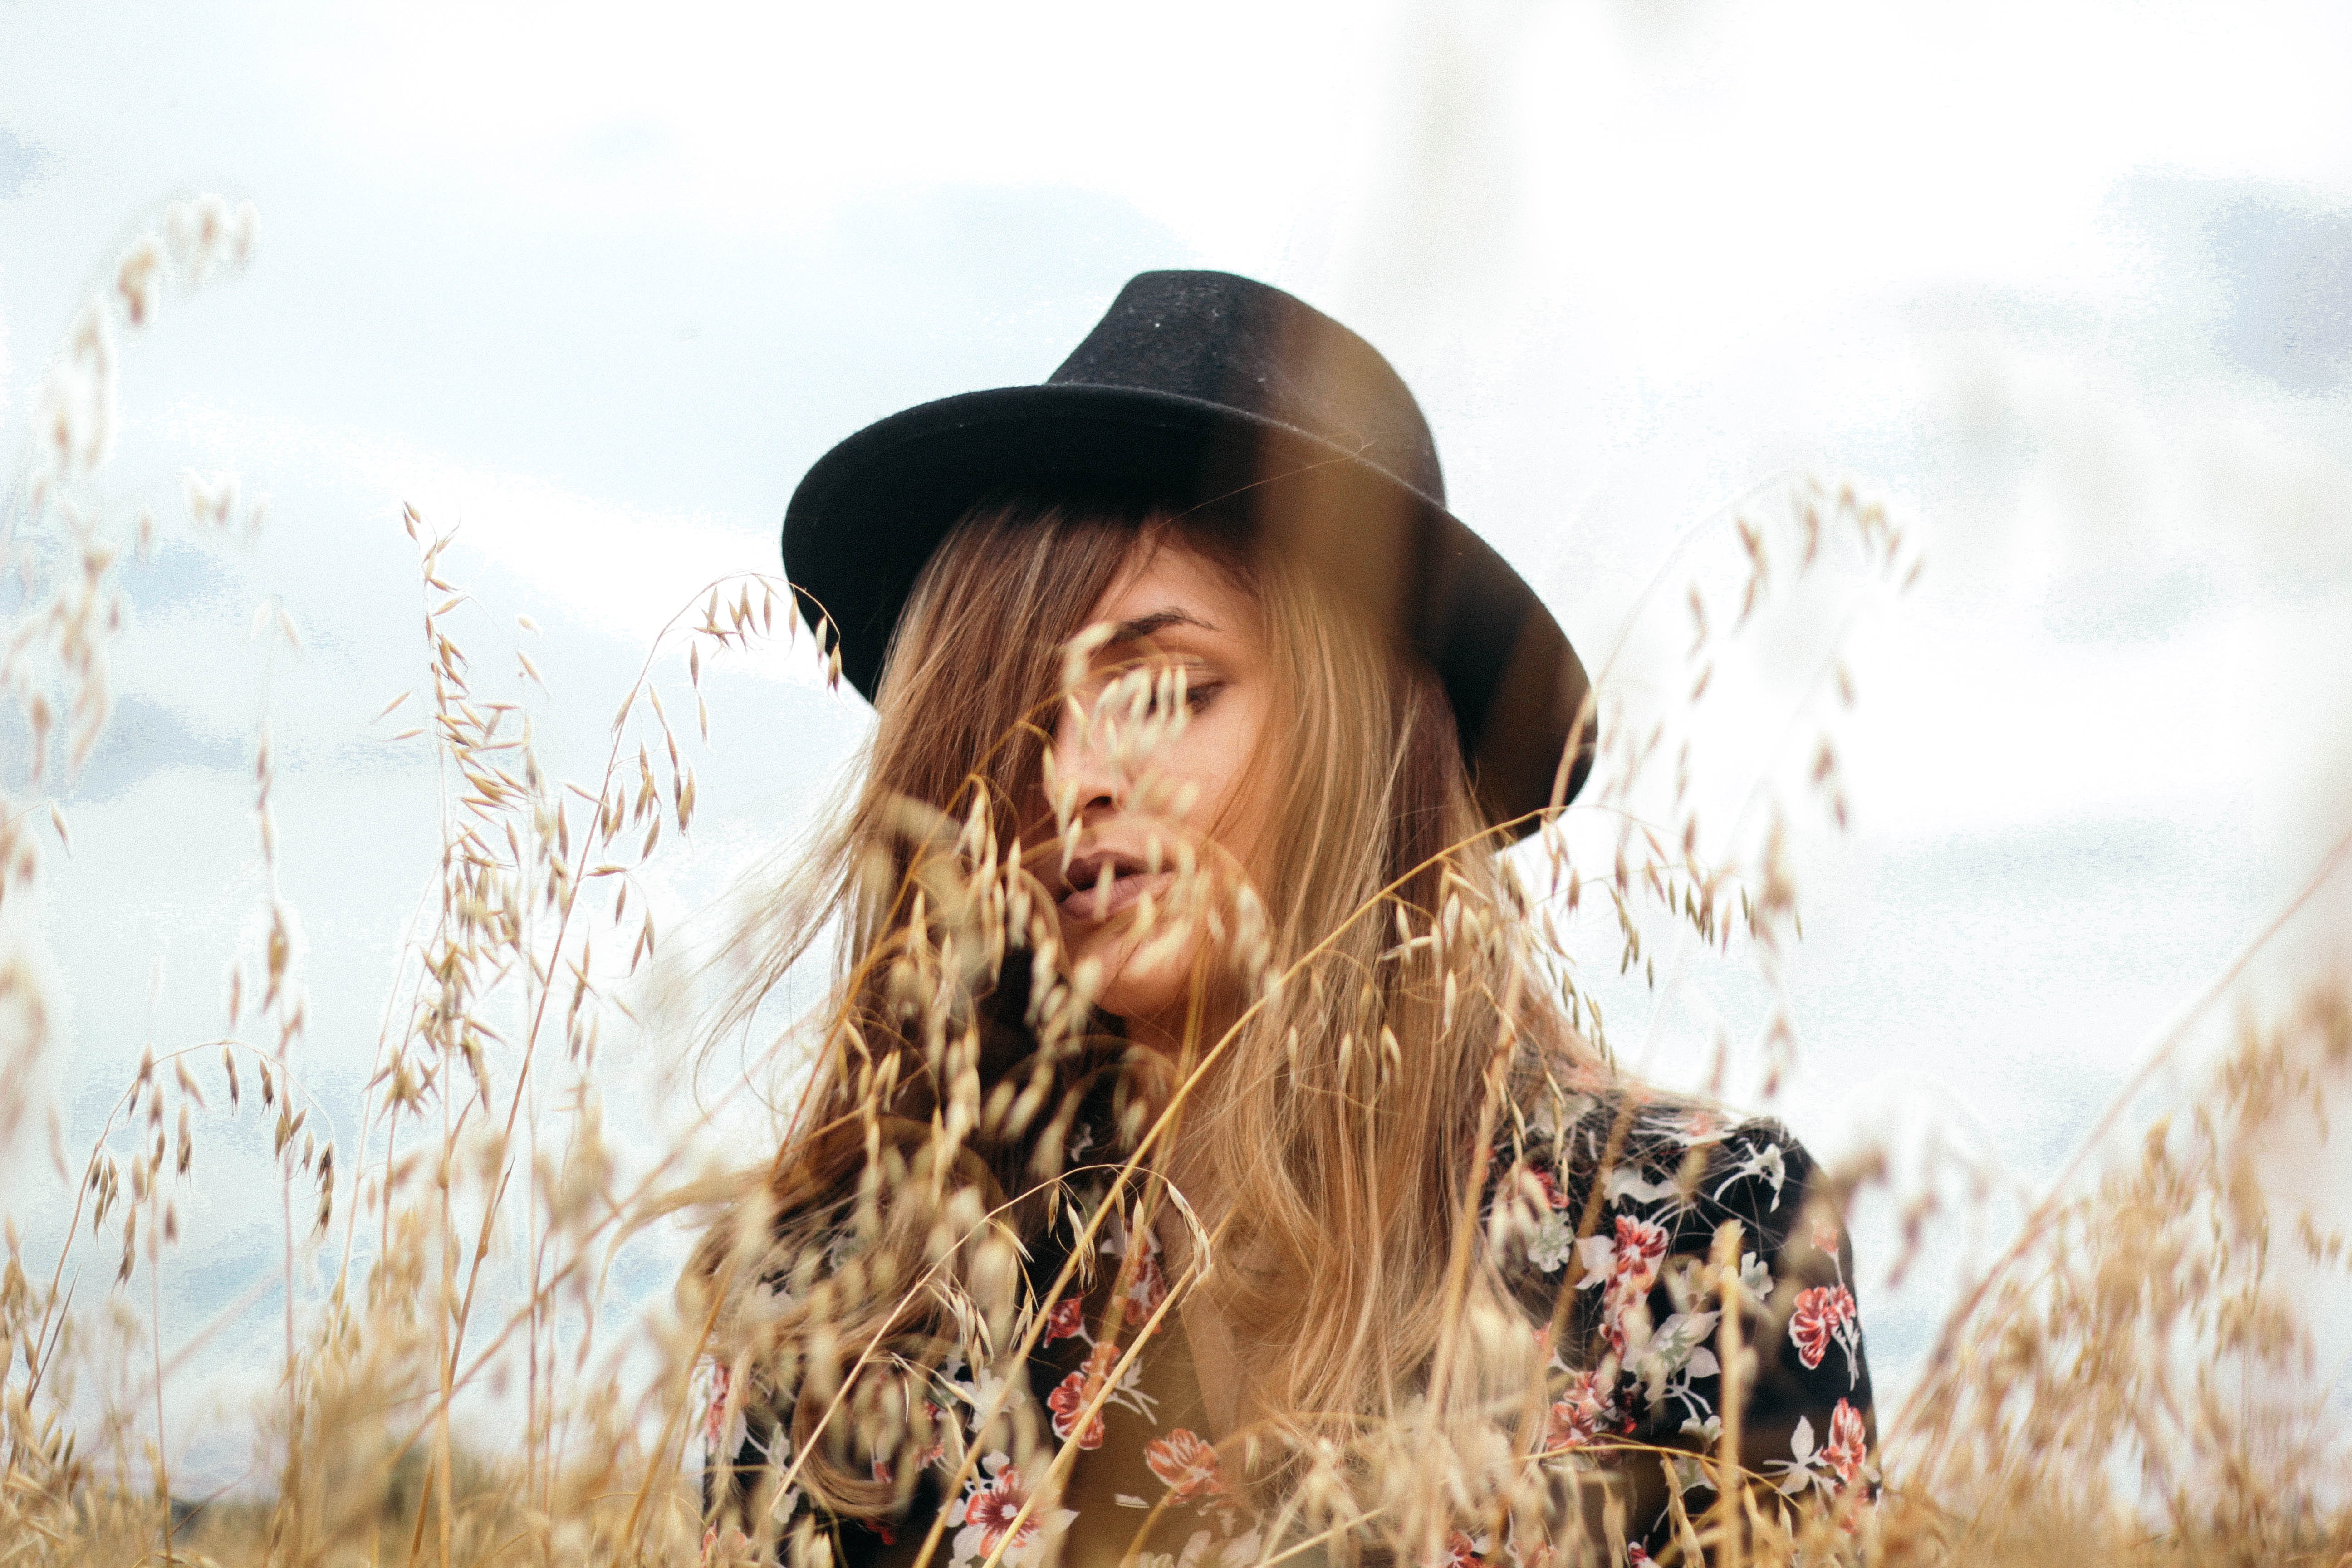 woman wearing black hat near brown grass during daytime